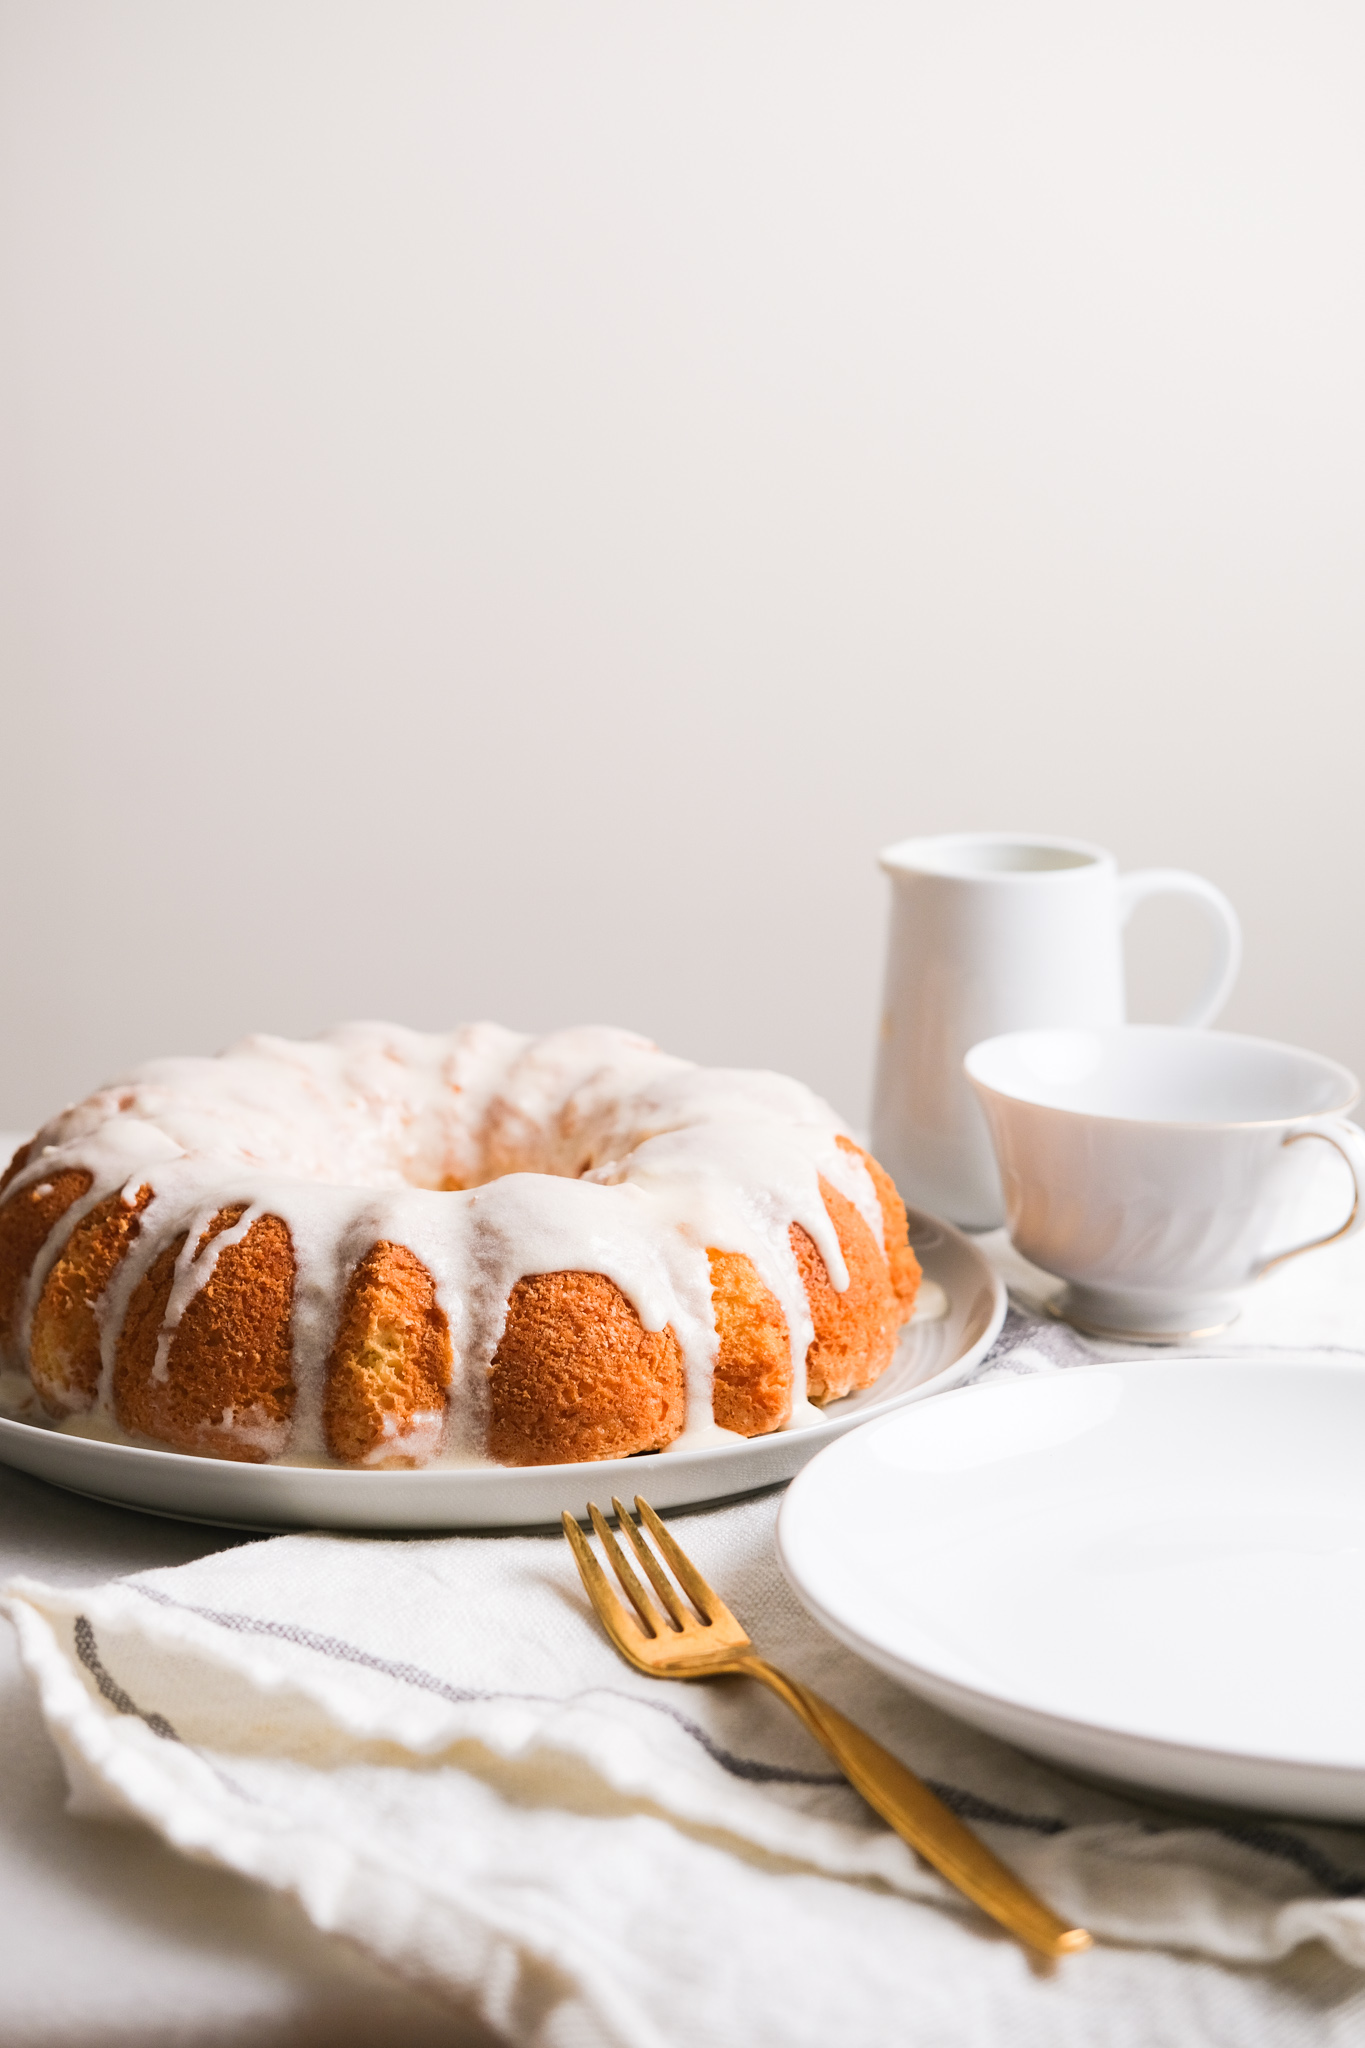 lemon cake with frosting on a table